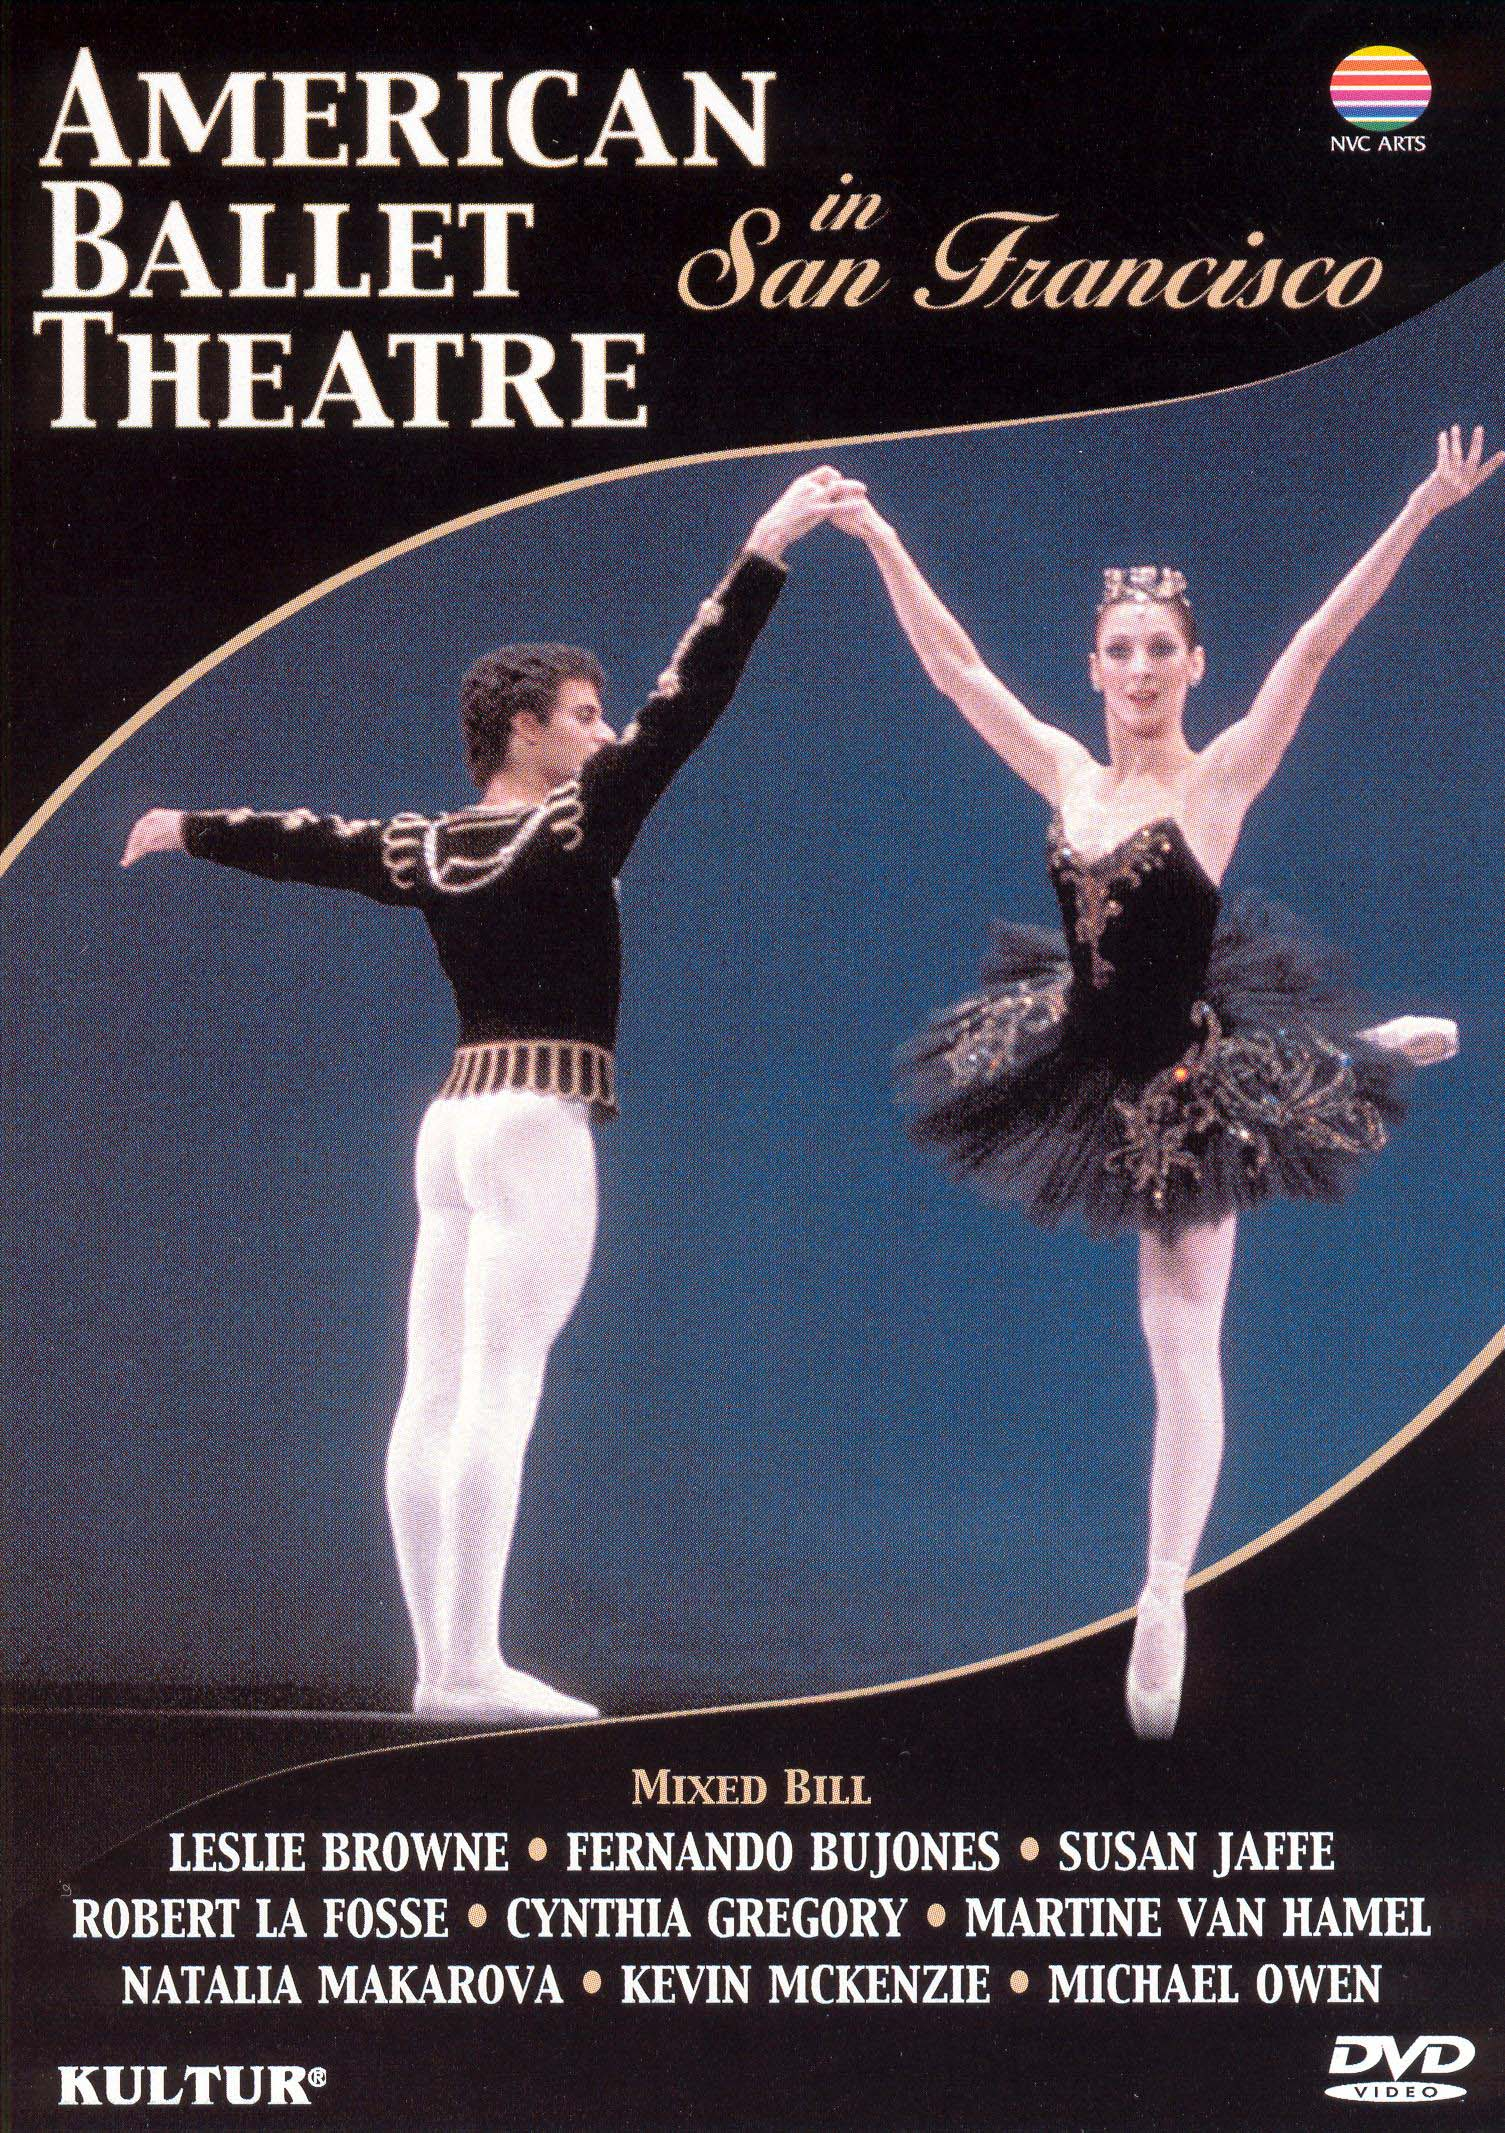 American Ballet Theatre in San Francisco